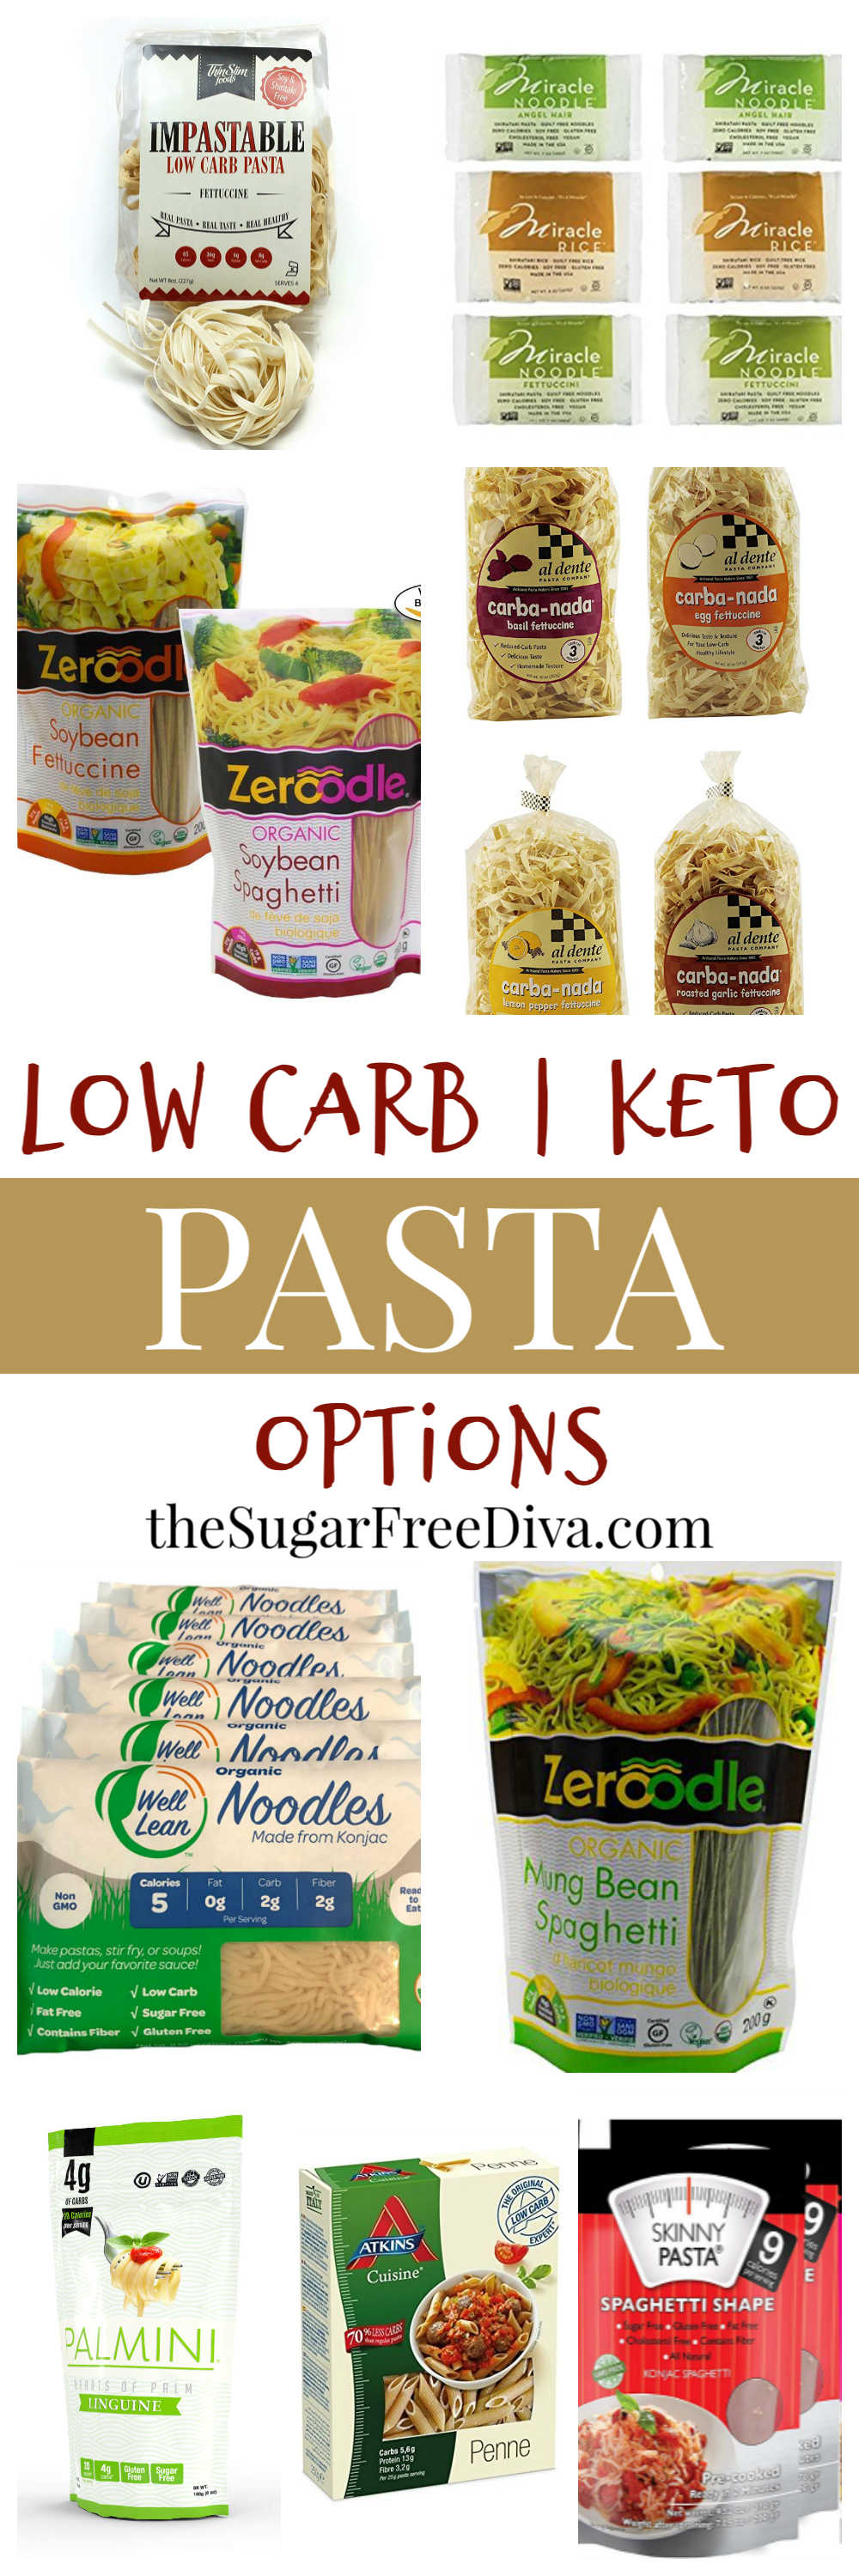 Low Carb Pasta Choices